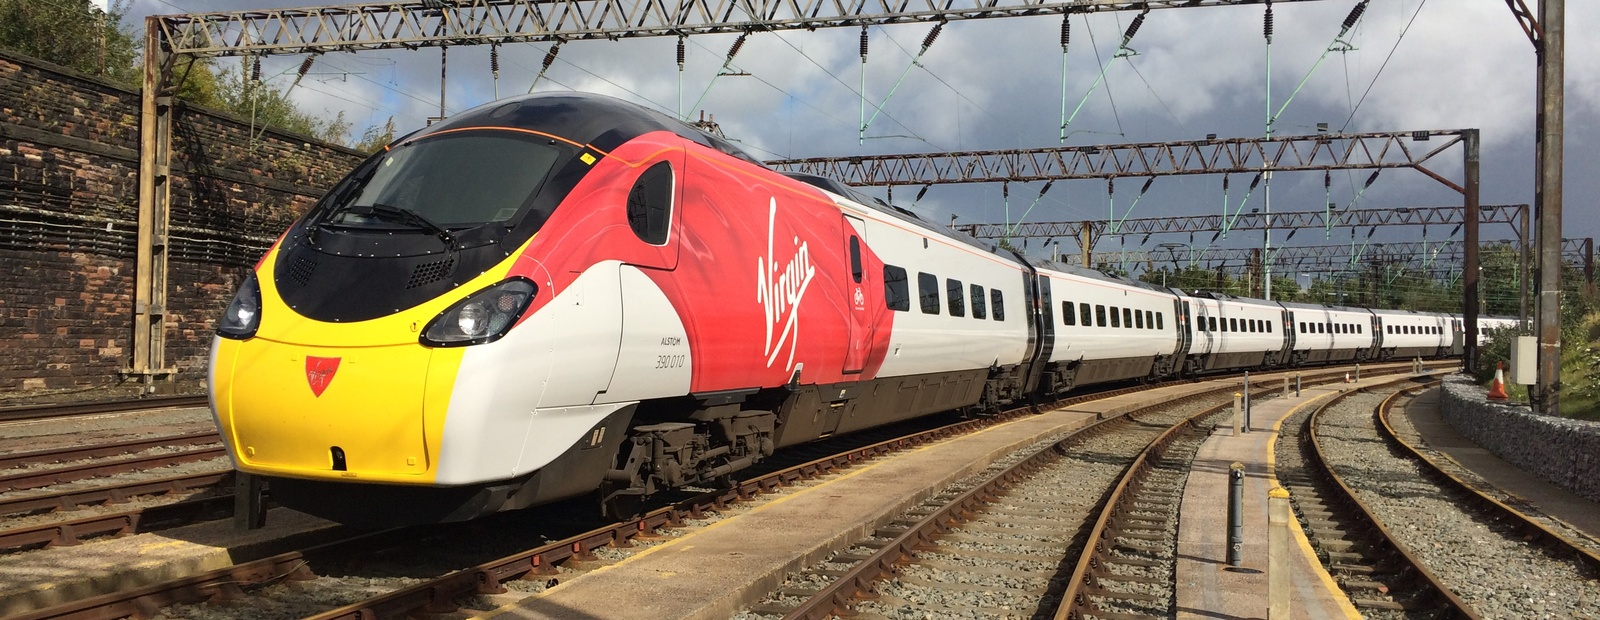 VIRGIN TRAINS WI-FI IMPROVED BY McLAREN APPLIED TECHNOLOGIES